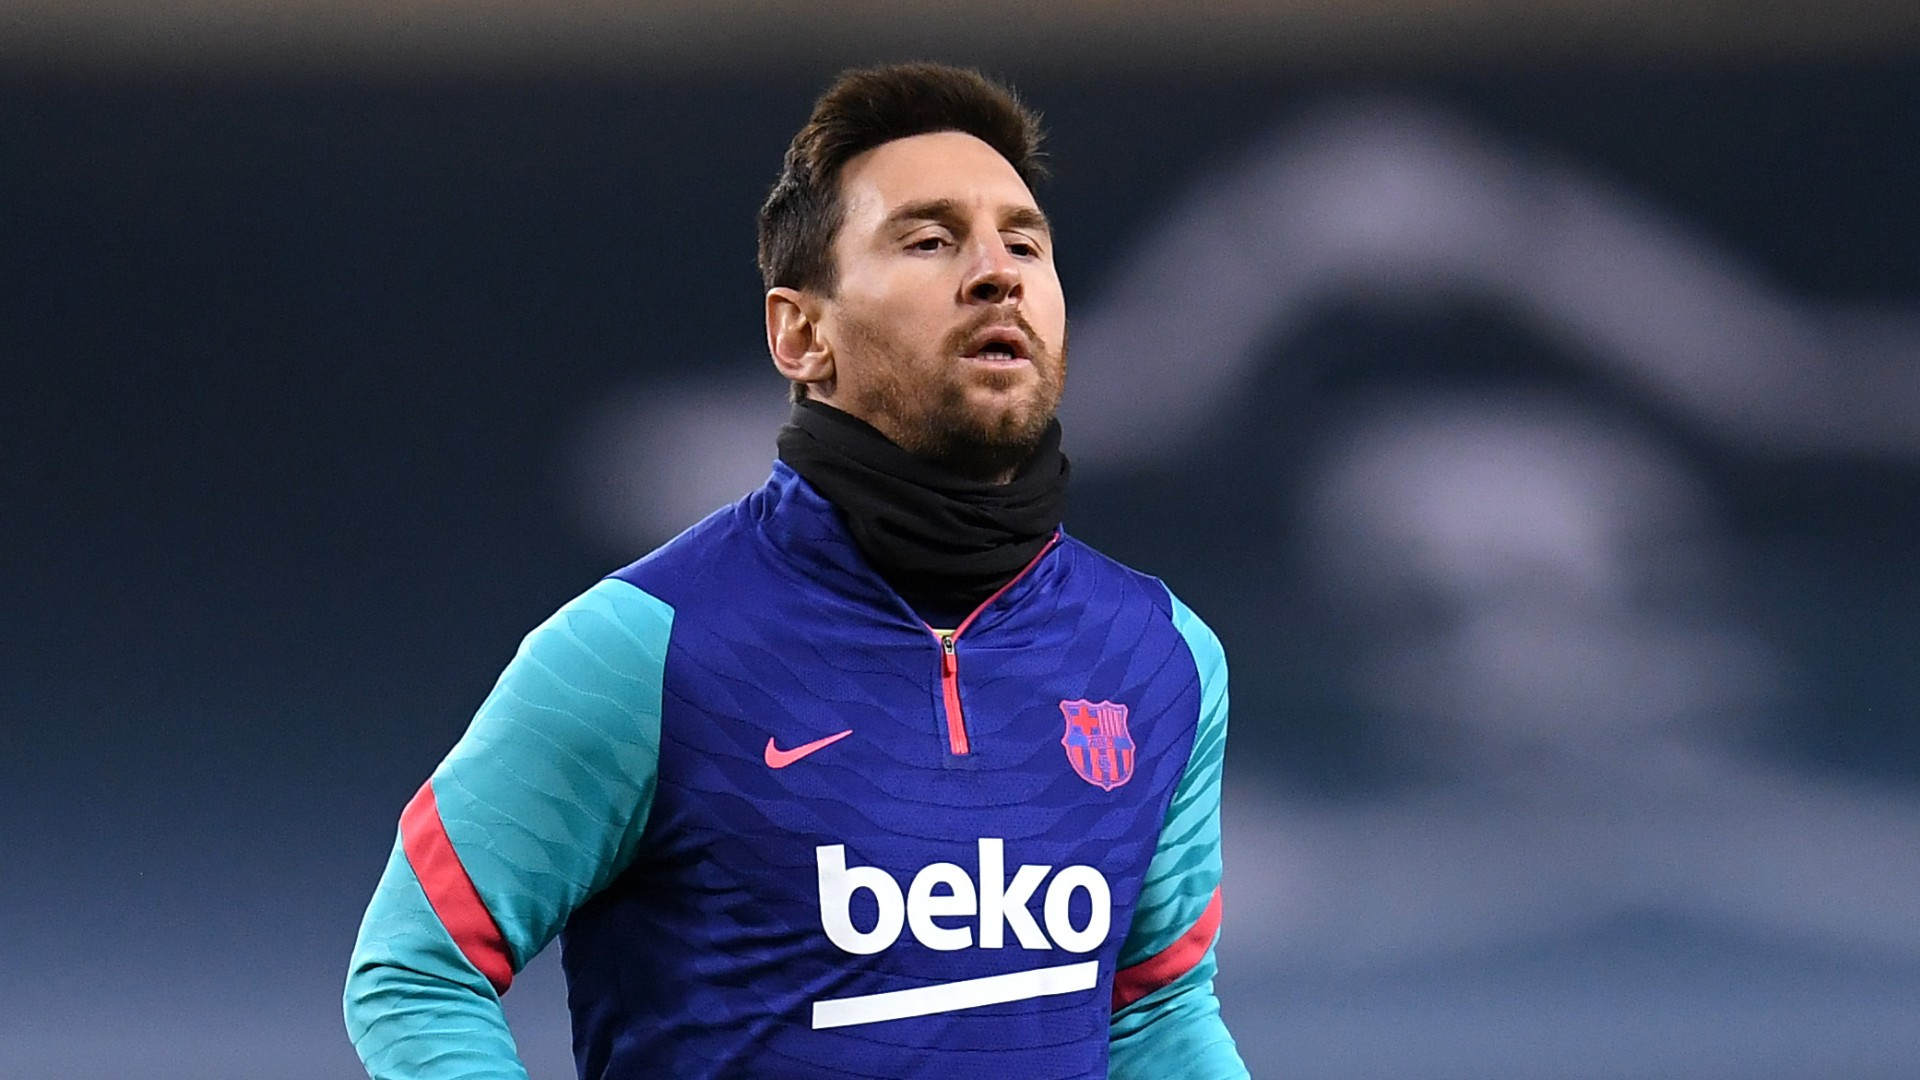 Barcelona to take legal action after publication of Messi's €555m contract details